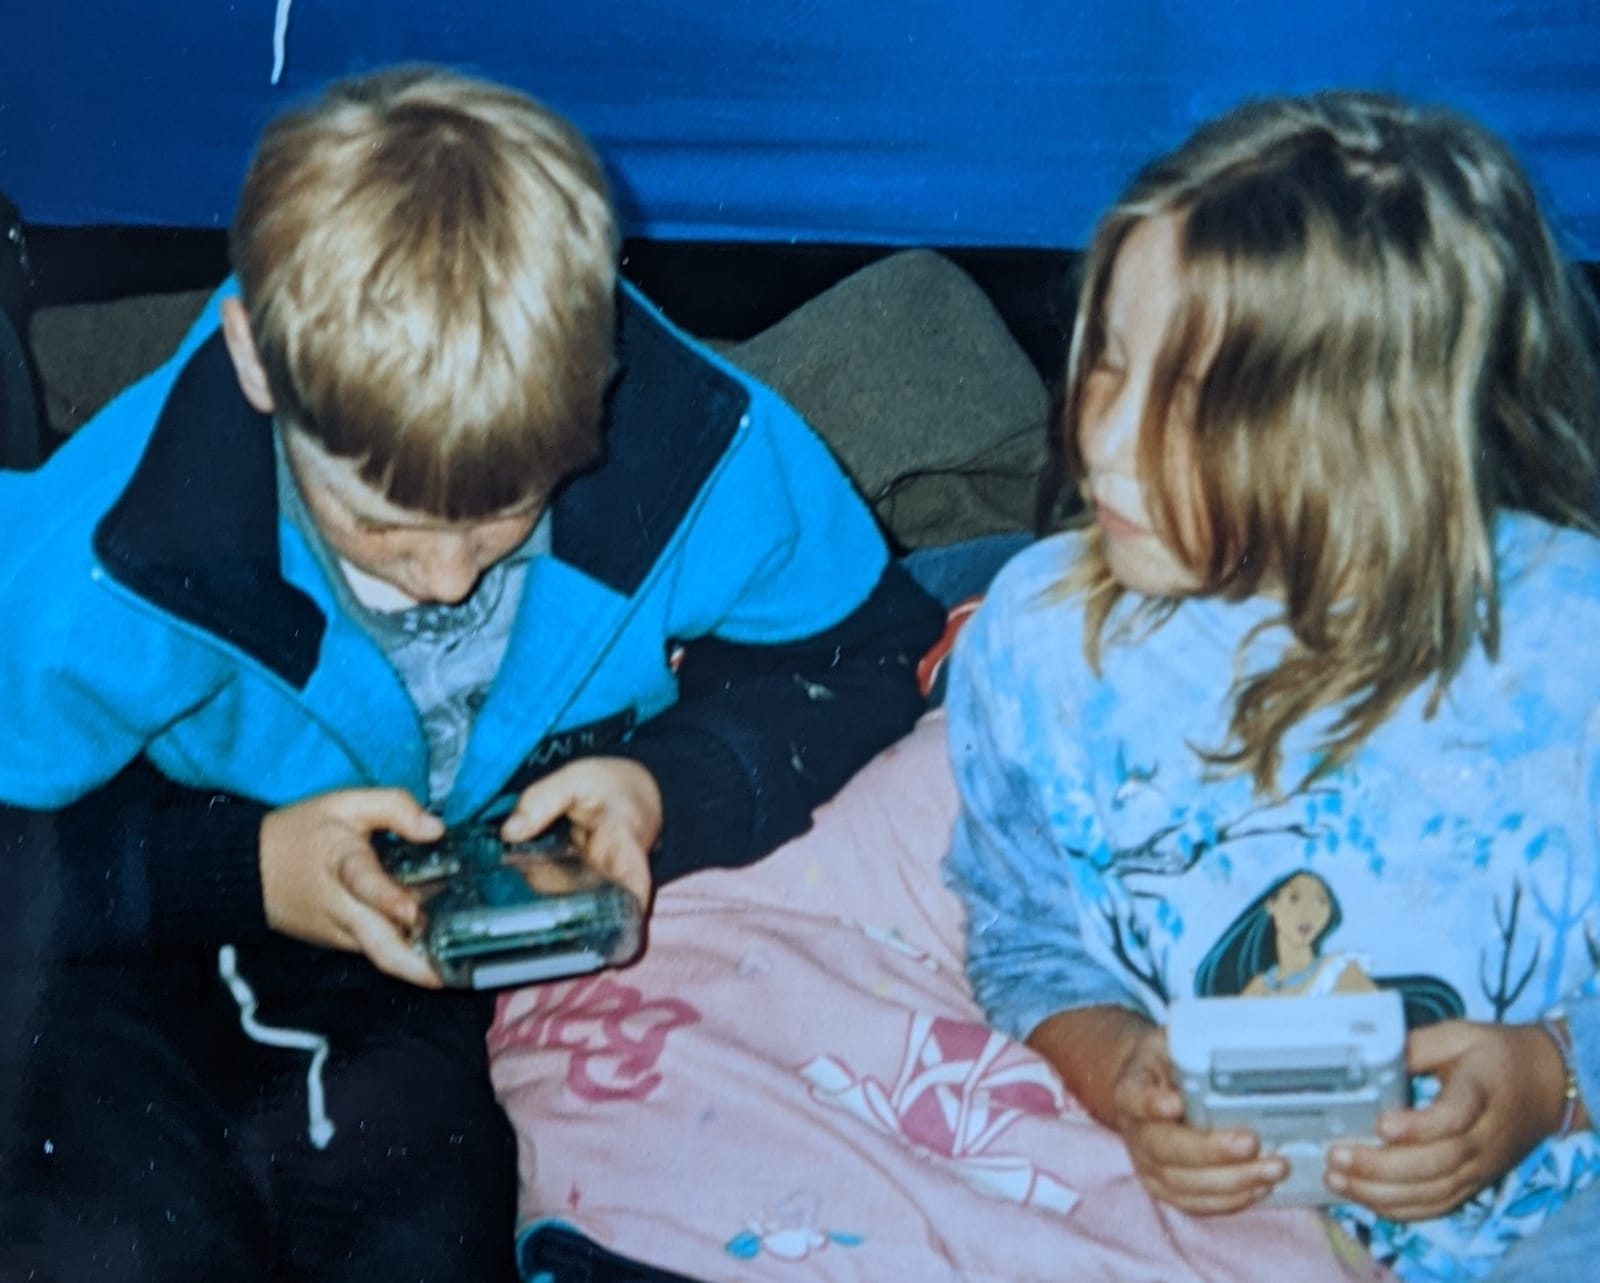 Me playing my GameBoy